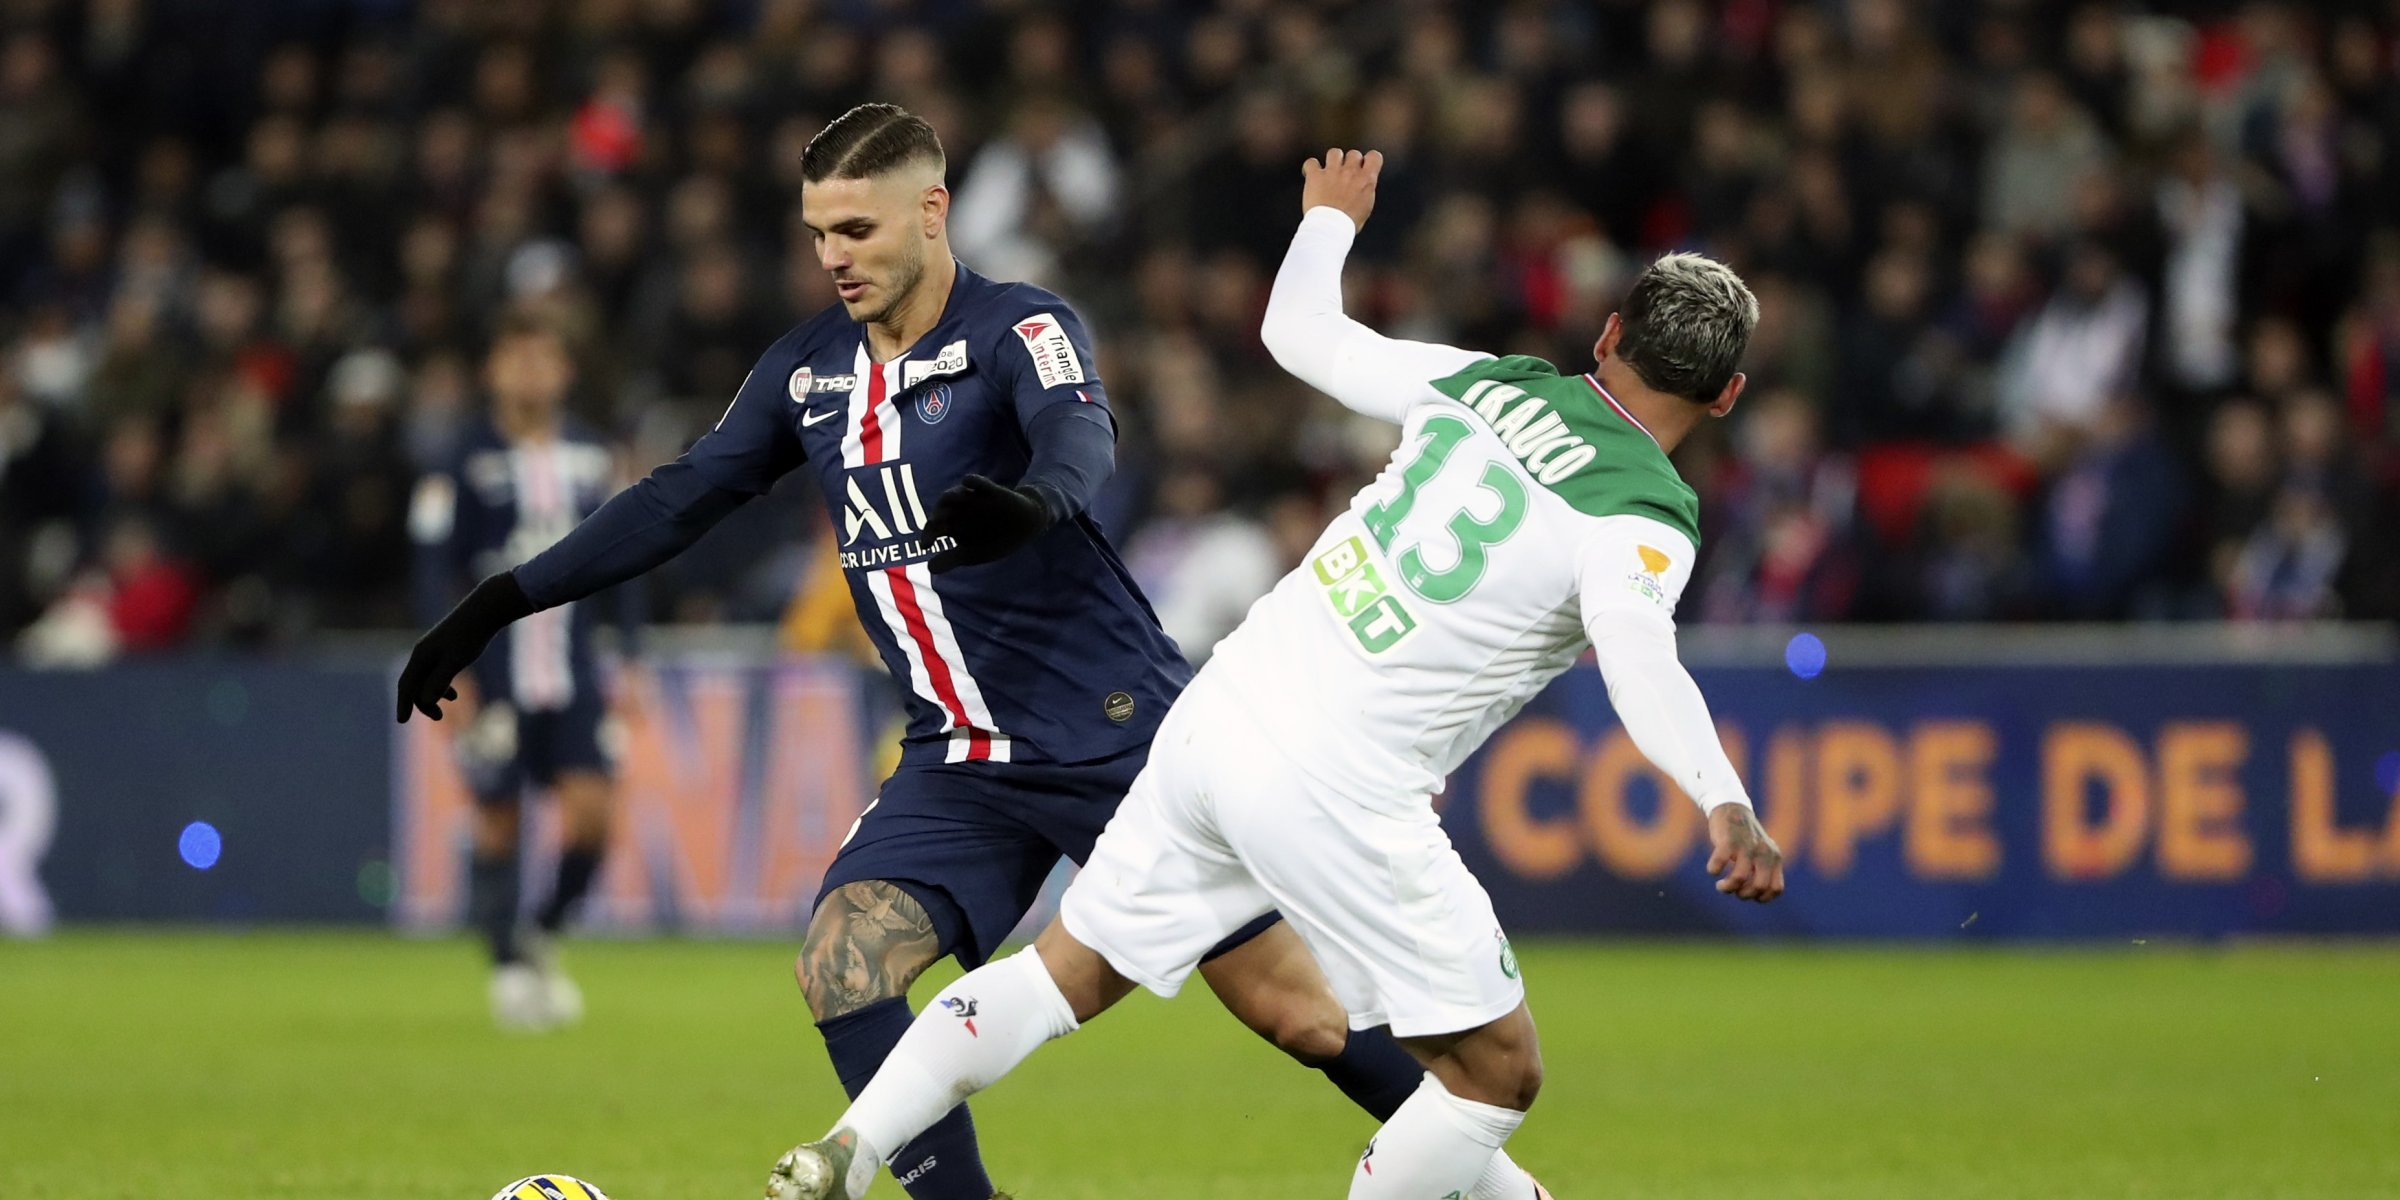 Psg Faces Saint Etienne In French Cup Final Daily Sabah